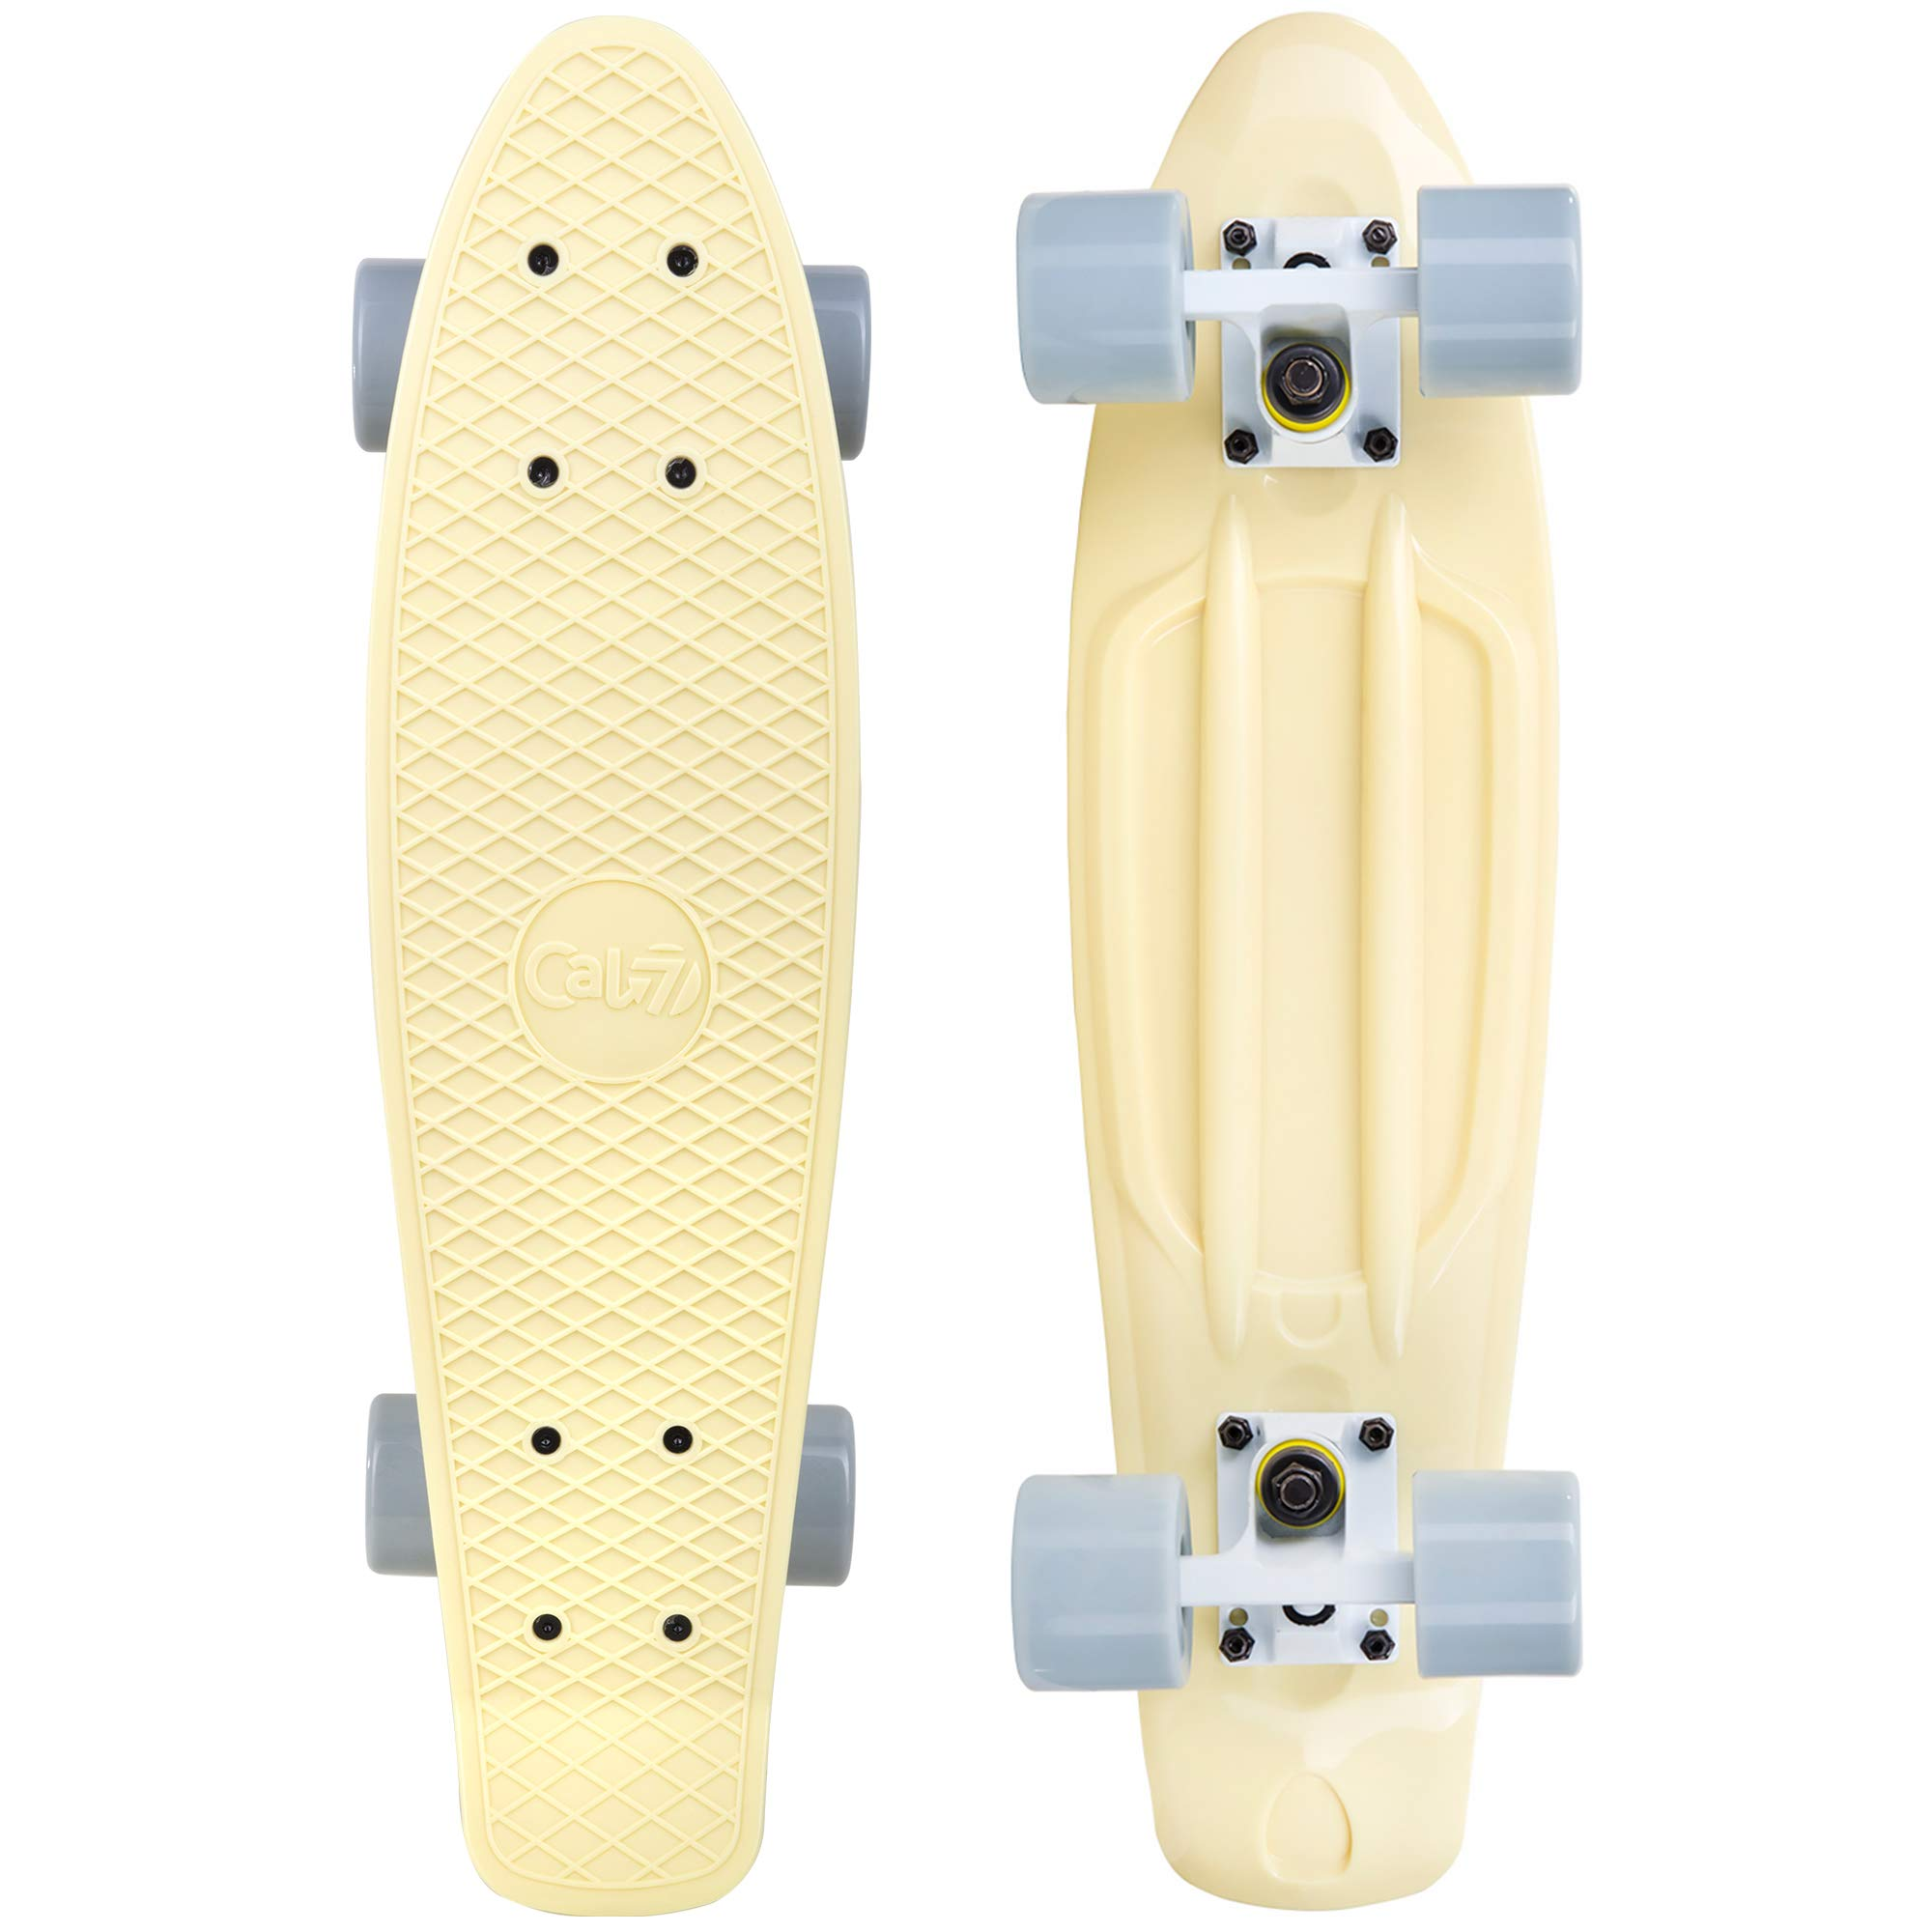 Cal 7 Complete Mini Cruiser | 22 Inch Micro Board | Vintage Skateboard for School and Travel (Snowdrop) by Cal 7